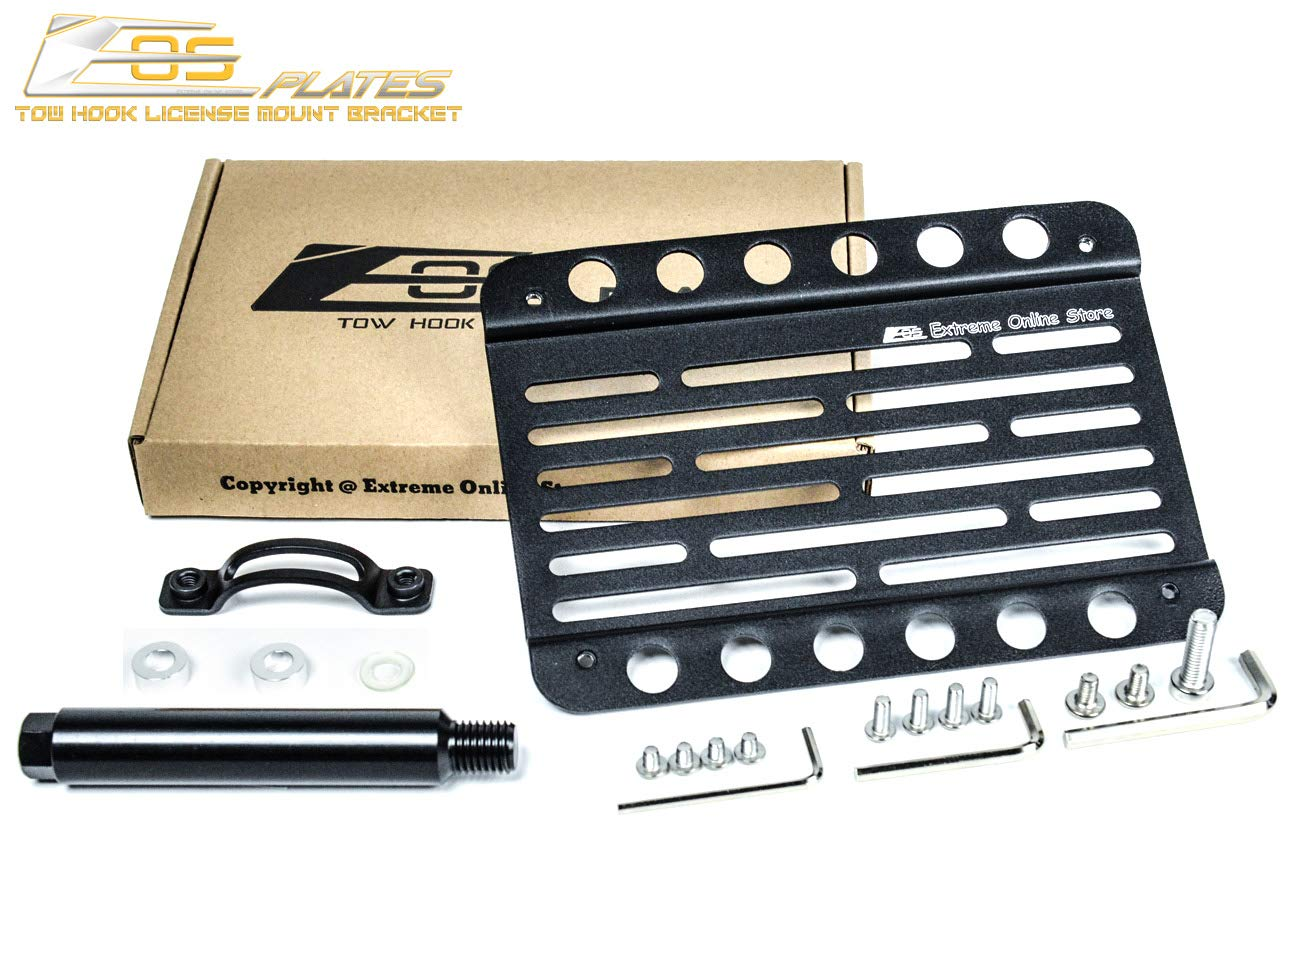 EOS Full Sized Front Tow Hook License Plate Bracket For 2015-2018 Cayenne 958.2